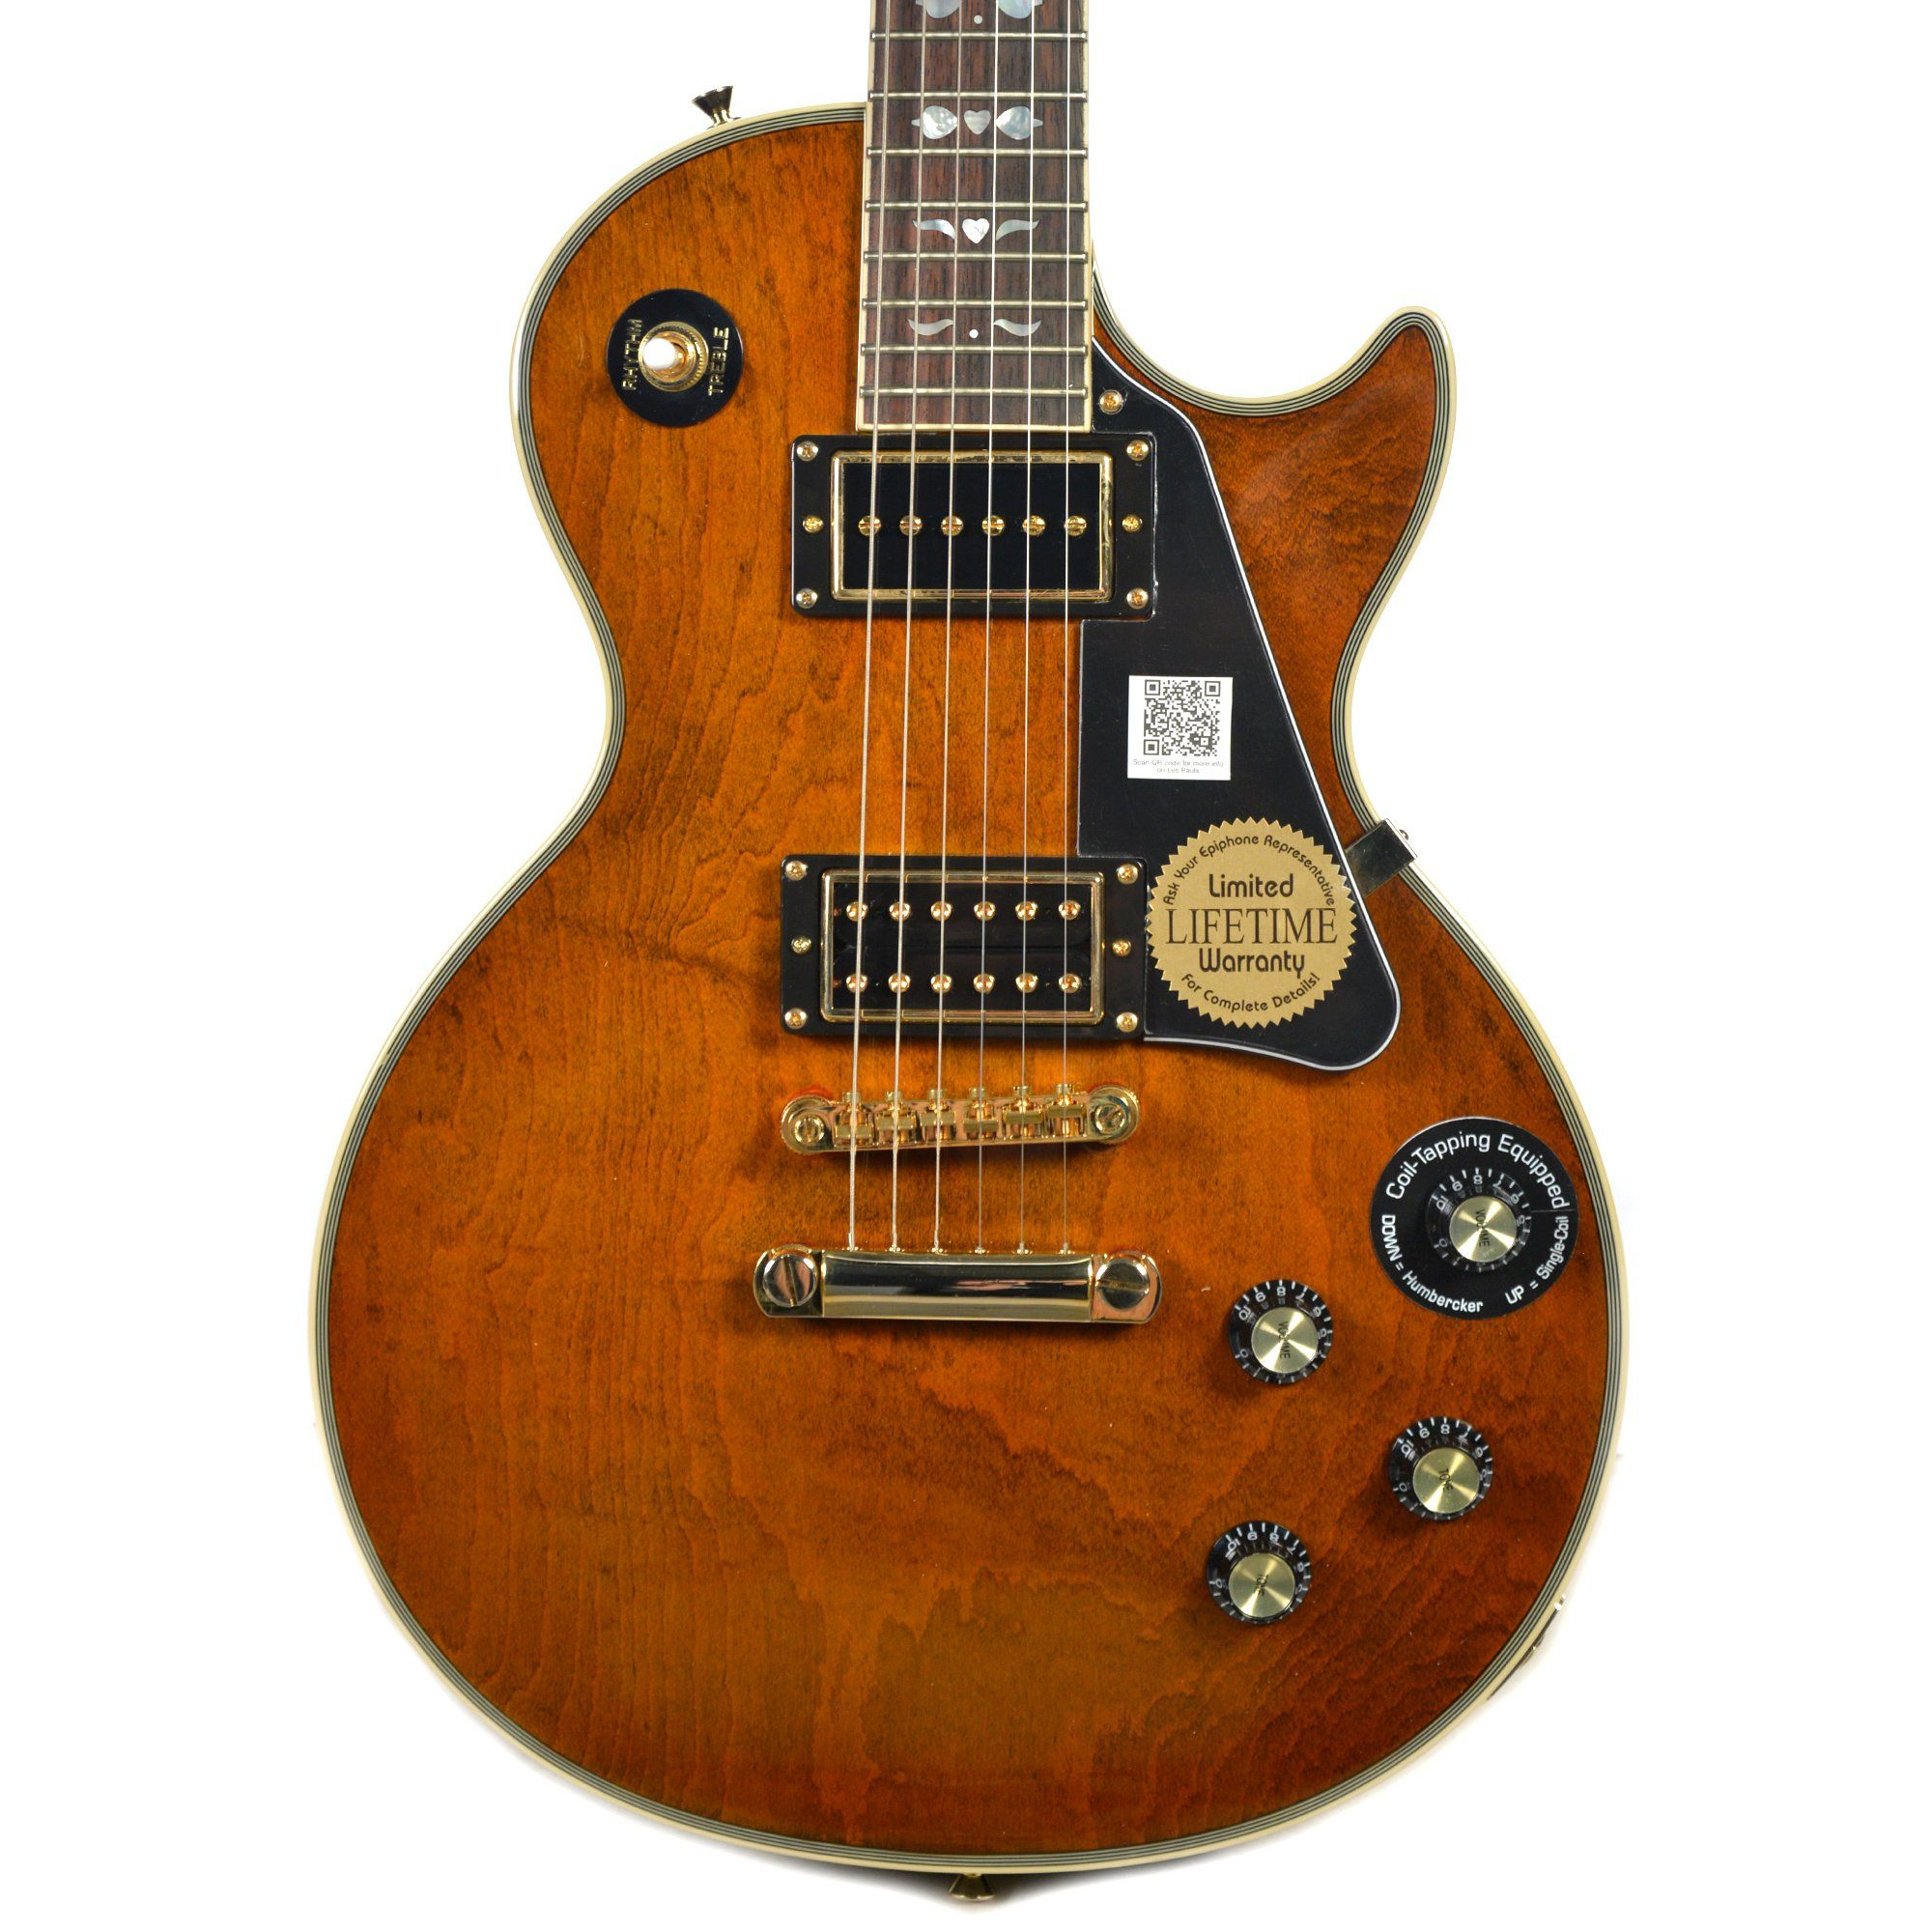 Epiphone Lee Malia Signature Les Paul Custom Walnut Limited Edition w Gibson USA Pickups